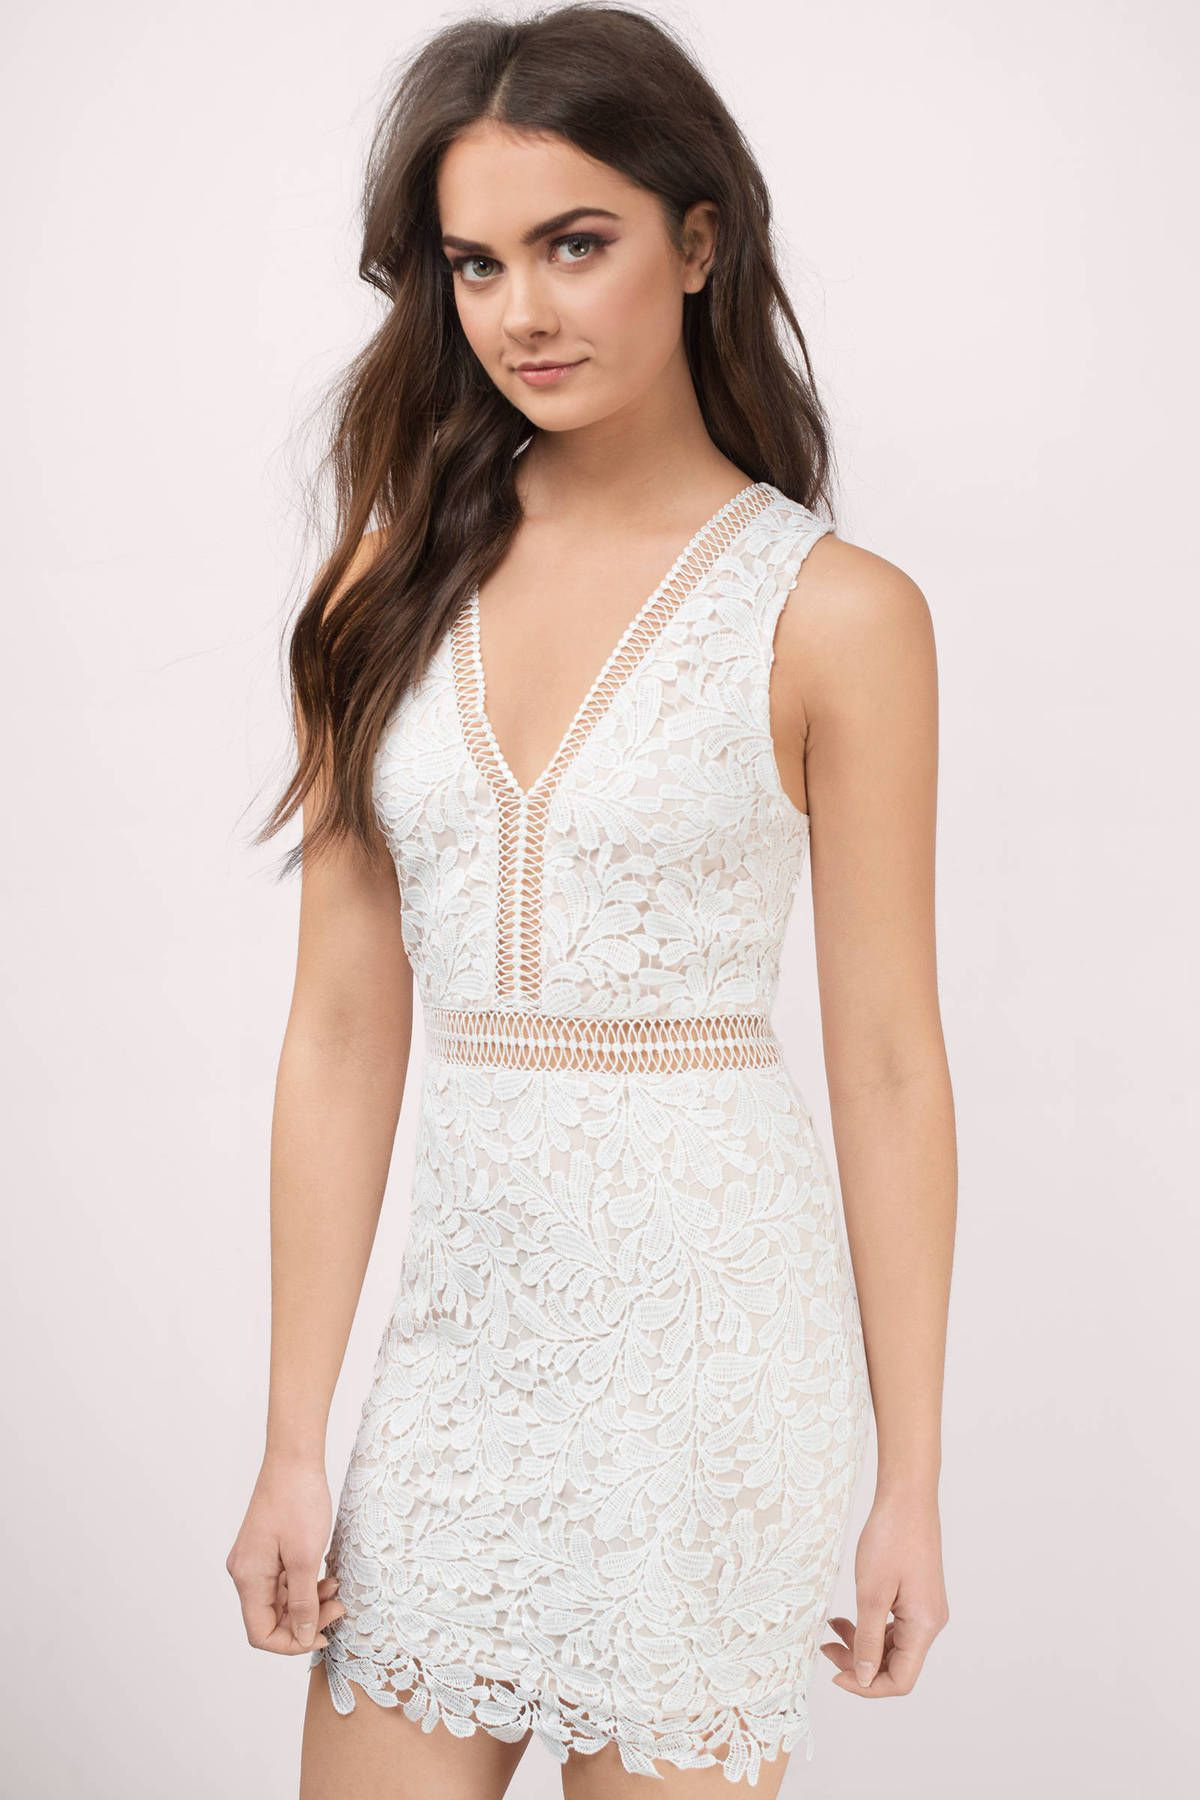 Looking for the Lei Ivory And Nude Lace Bodycon Dress? | Find ...